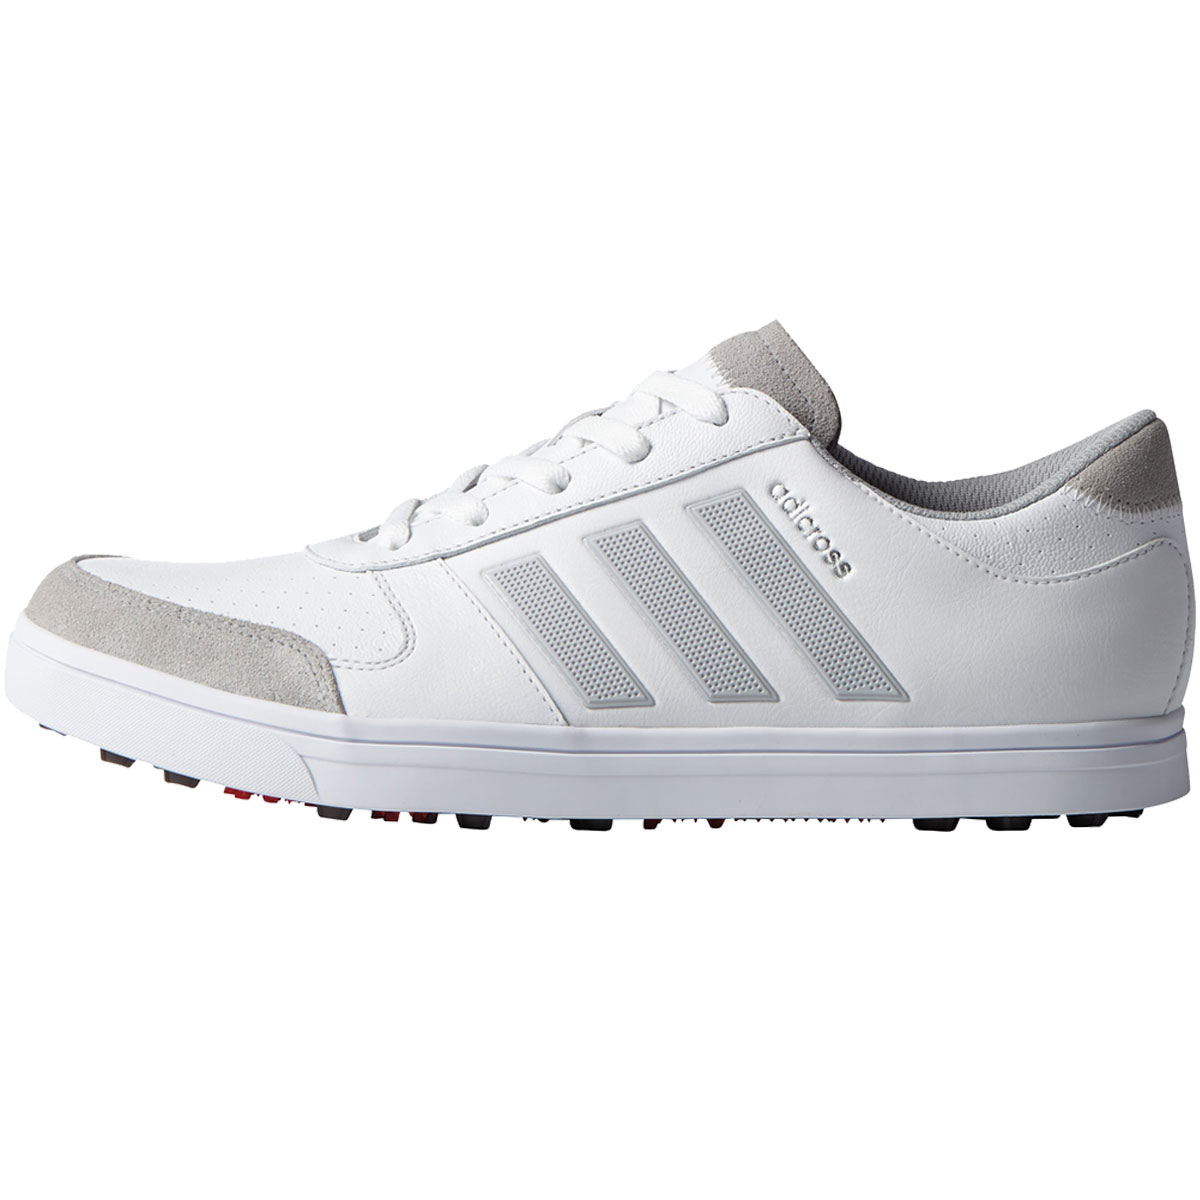 adidas golf mens adicross gripmore 2 waterproof spikeless